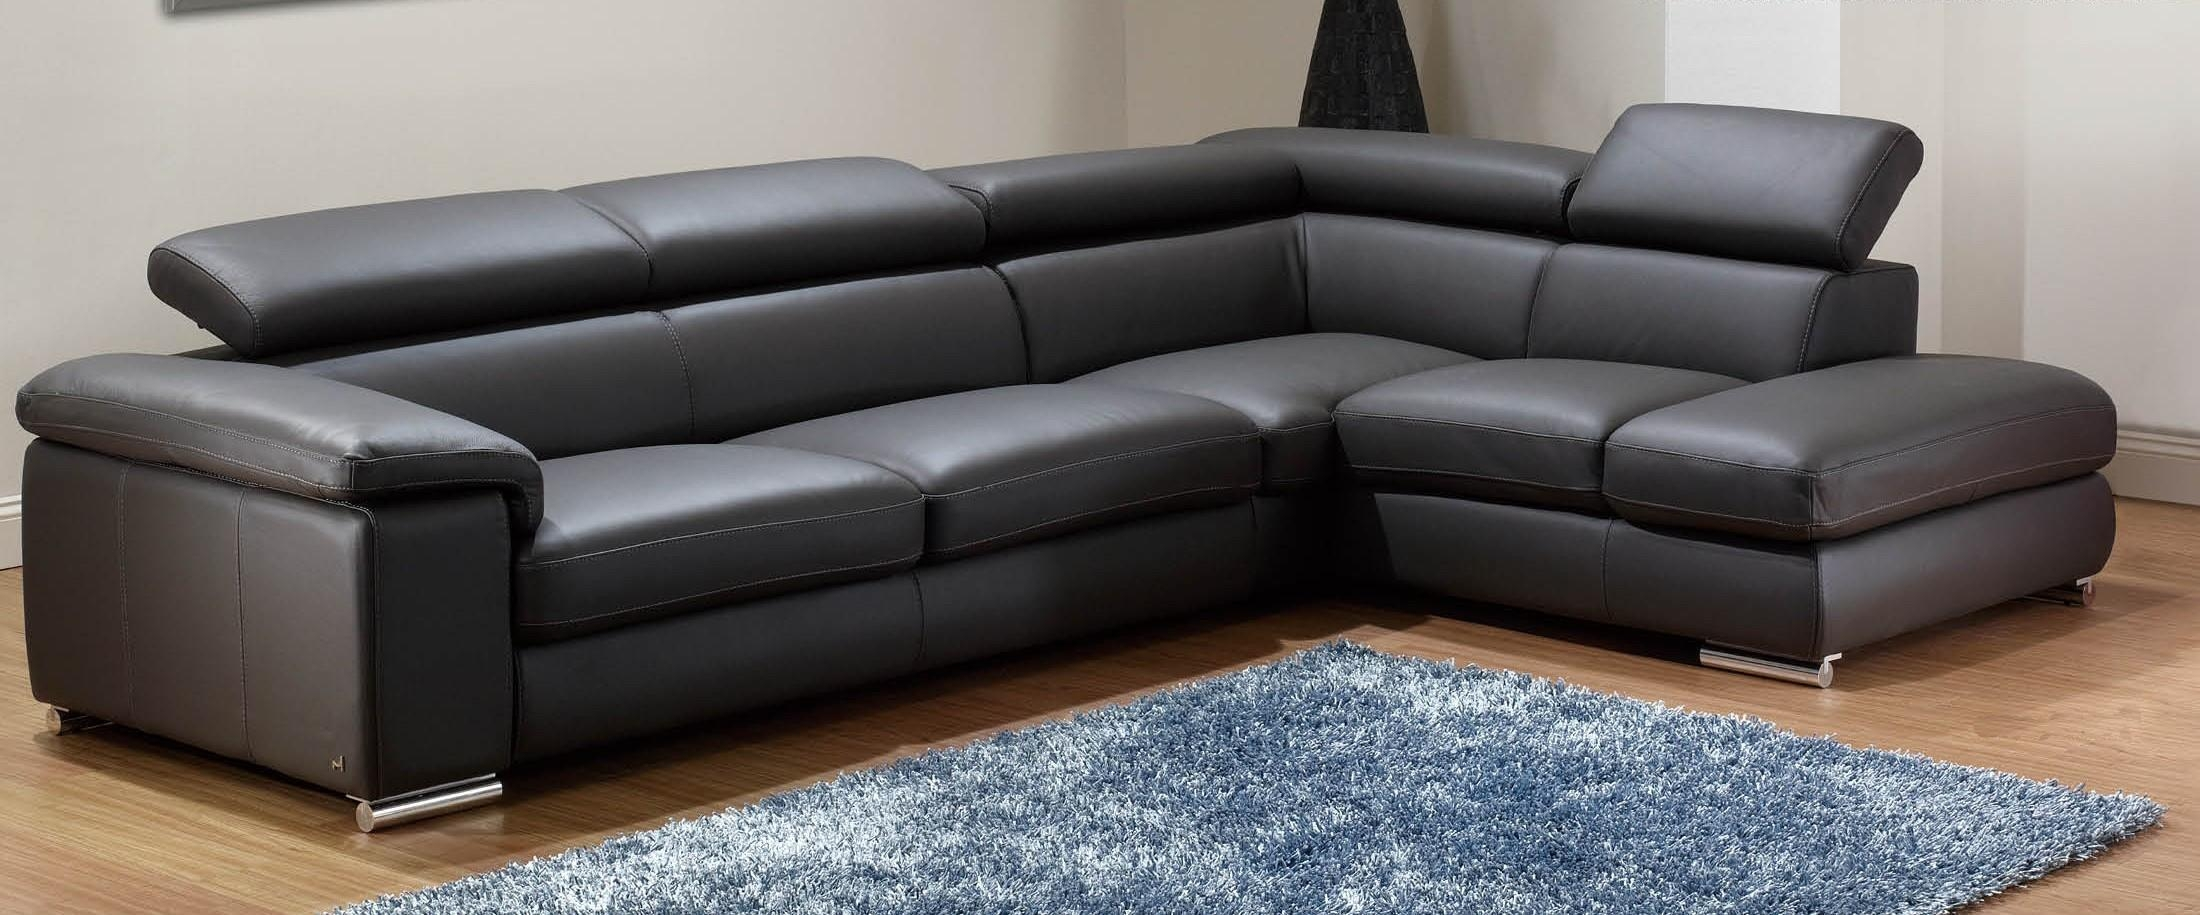 Sectional Sleeper Sofa : Collection of black leather sectional sleeper sofas